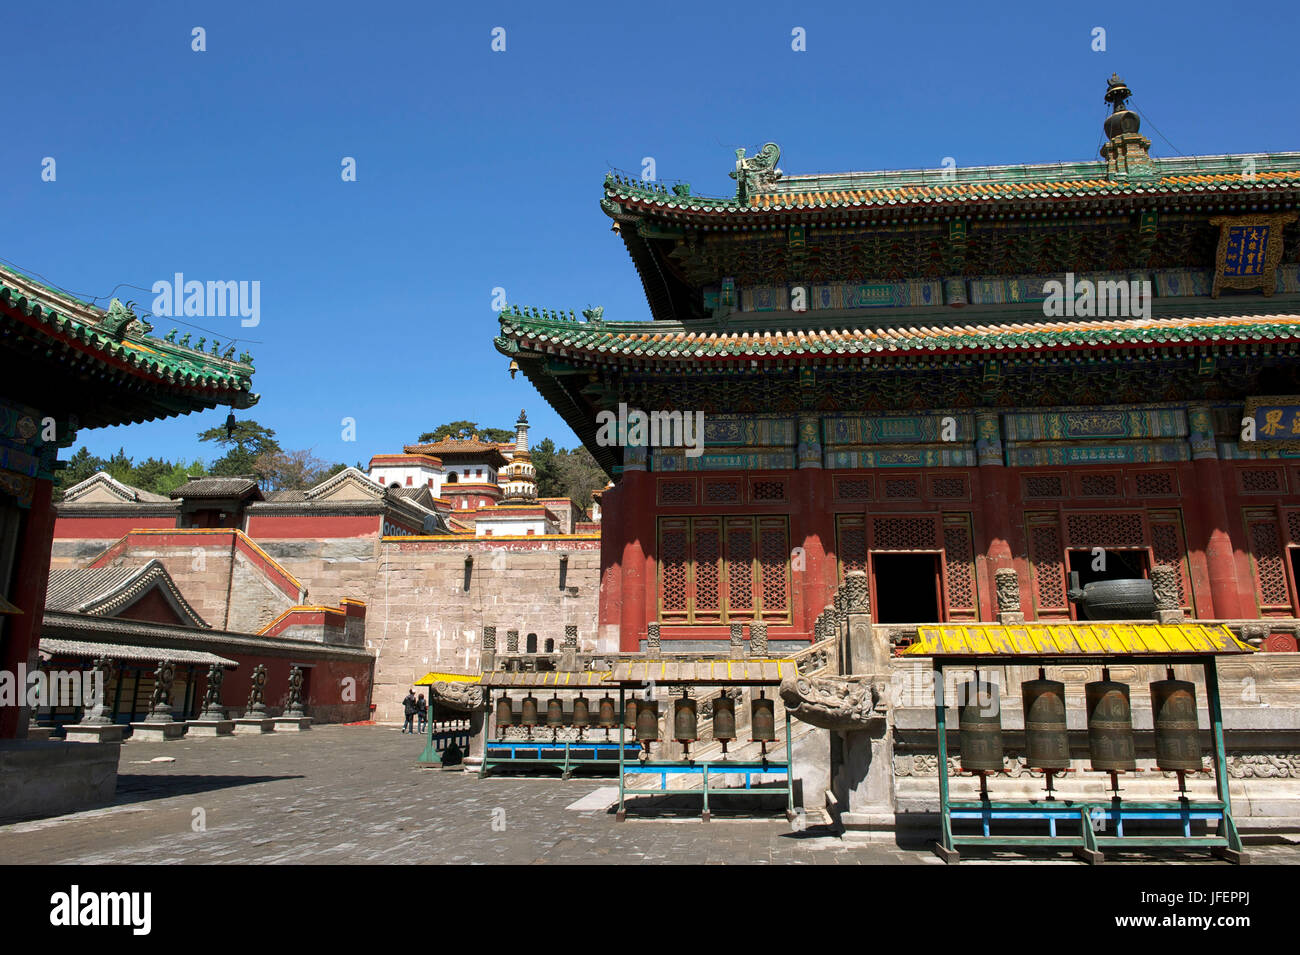 China, Hebei Province, Chengde, Puning Si temple classified by Unesco - Stock Image